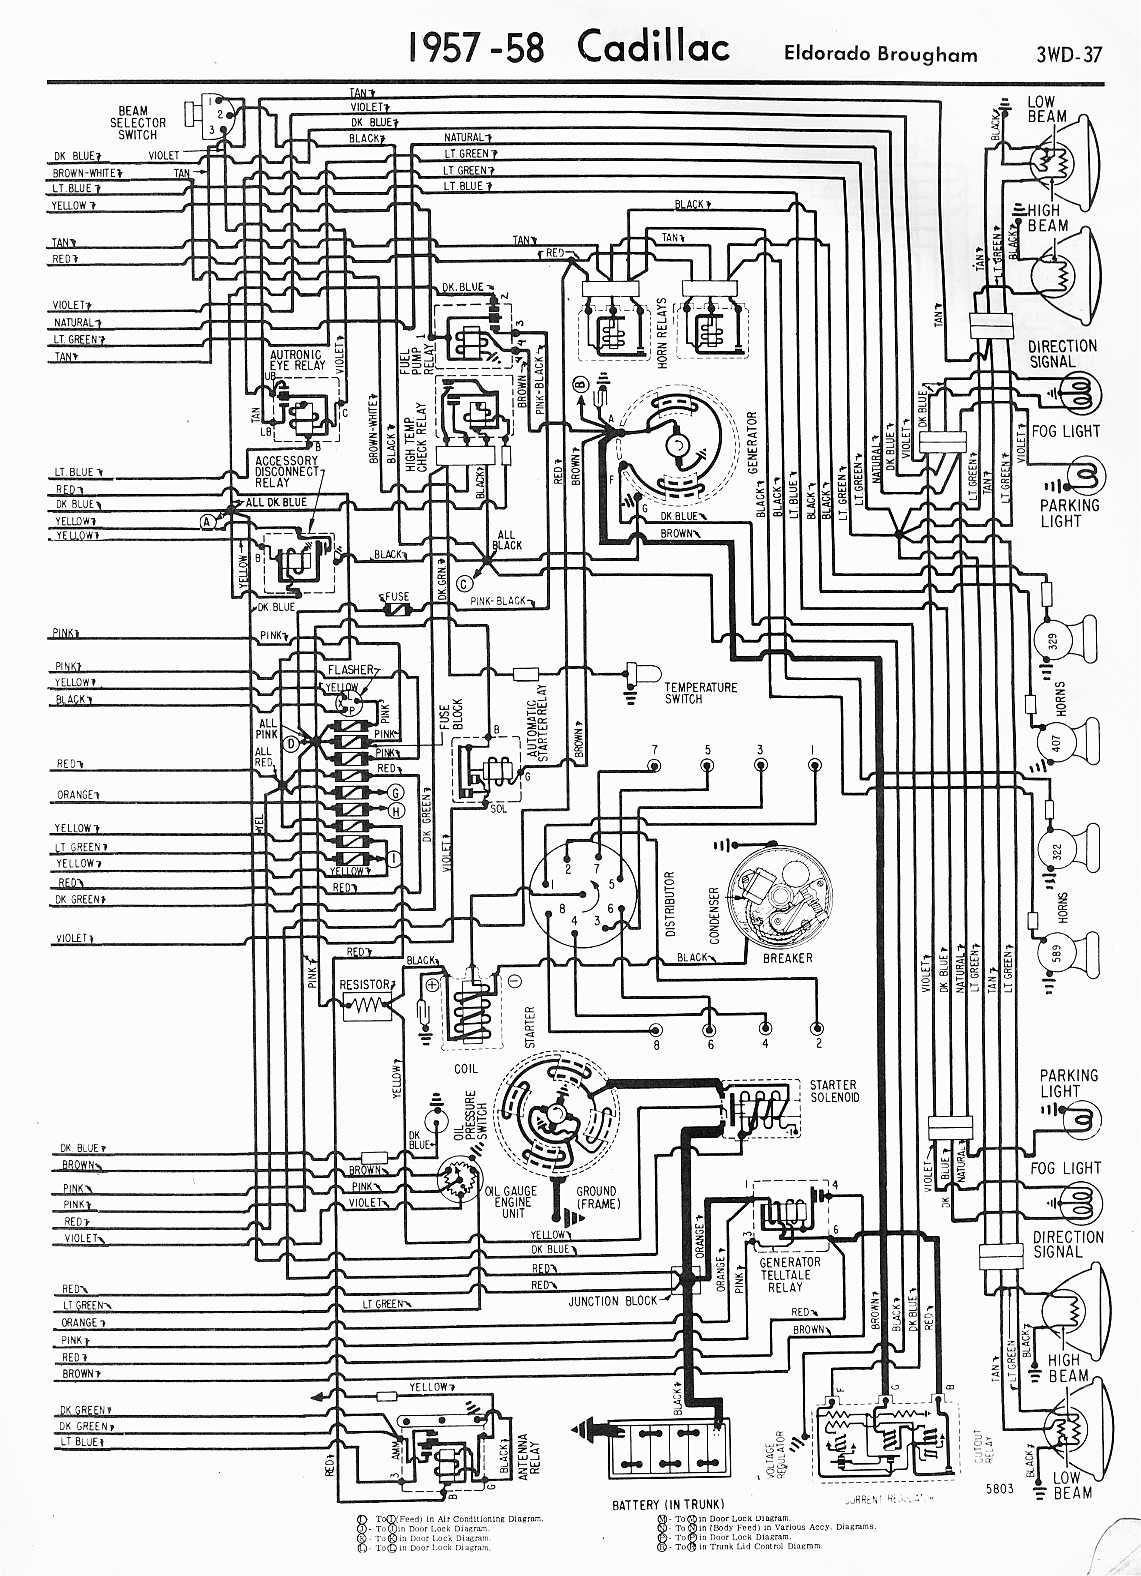 1957 1958 cadillac eldorado brougham wiring diagram all 05 wiring diagrams for chevy trucks turn signal